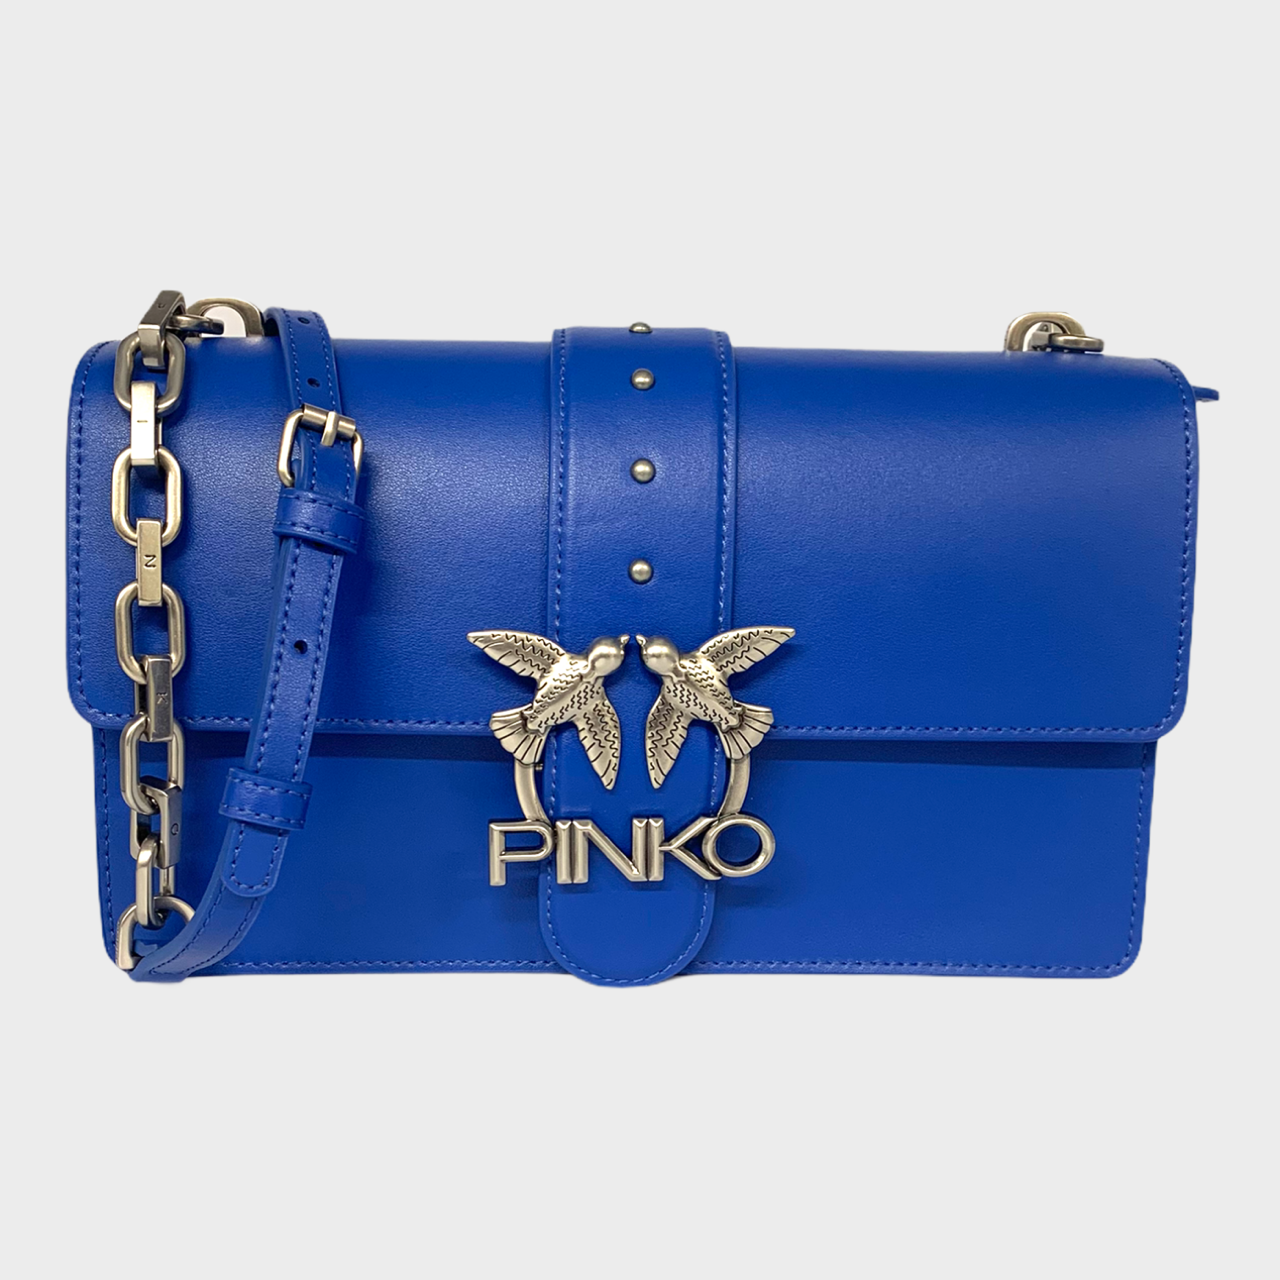 SHOPPING ON LINE PINKO BORSA LOVE ICON SIMPLY3 IN PELLE BOTTALATA NEW COLLECTION WOMEN'S SPRING SUMMER 2021